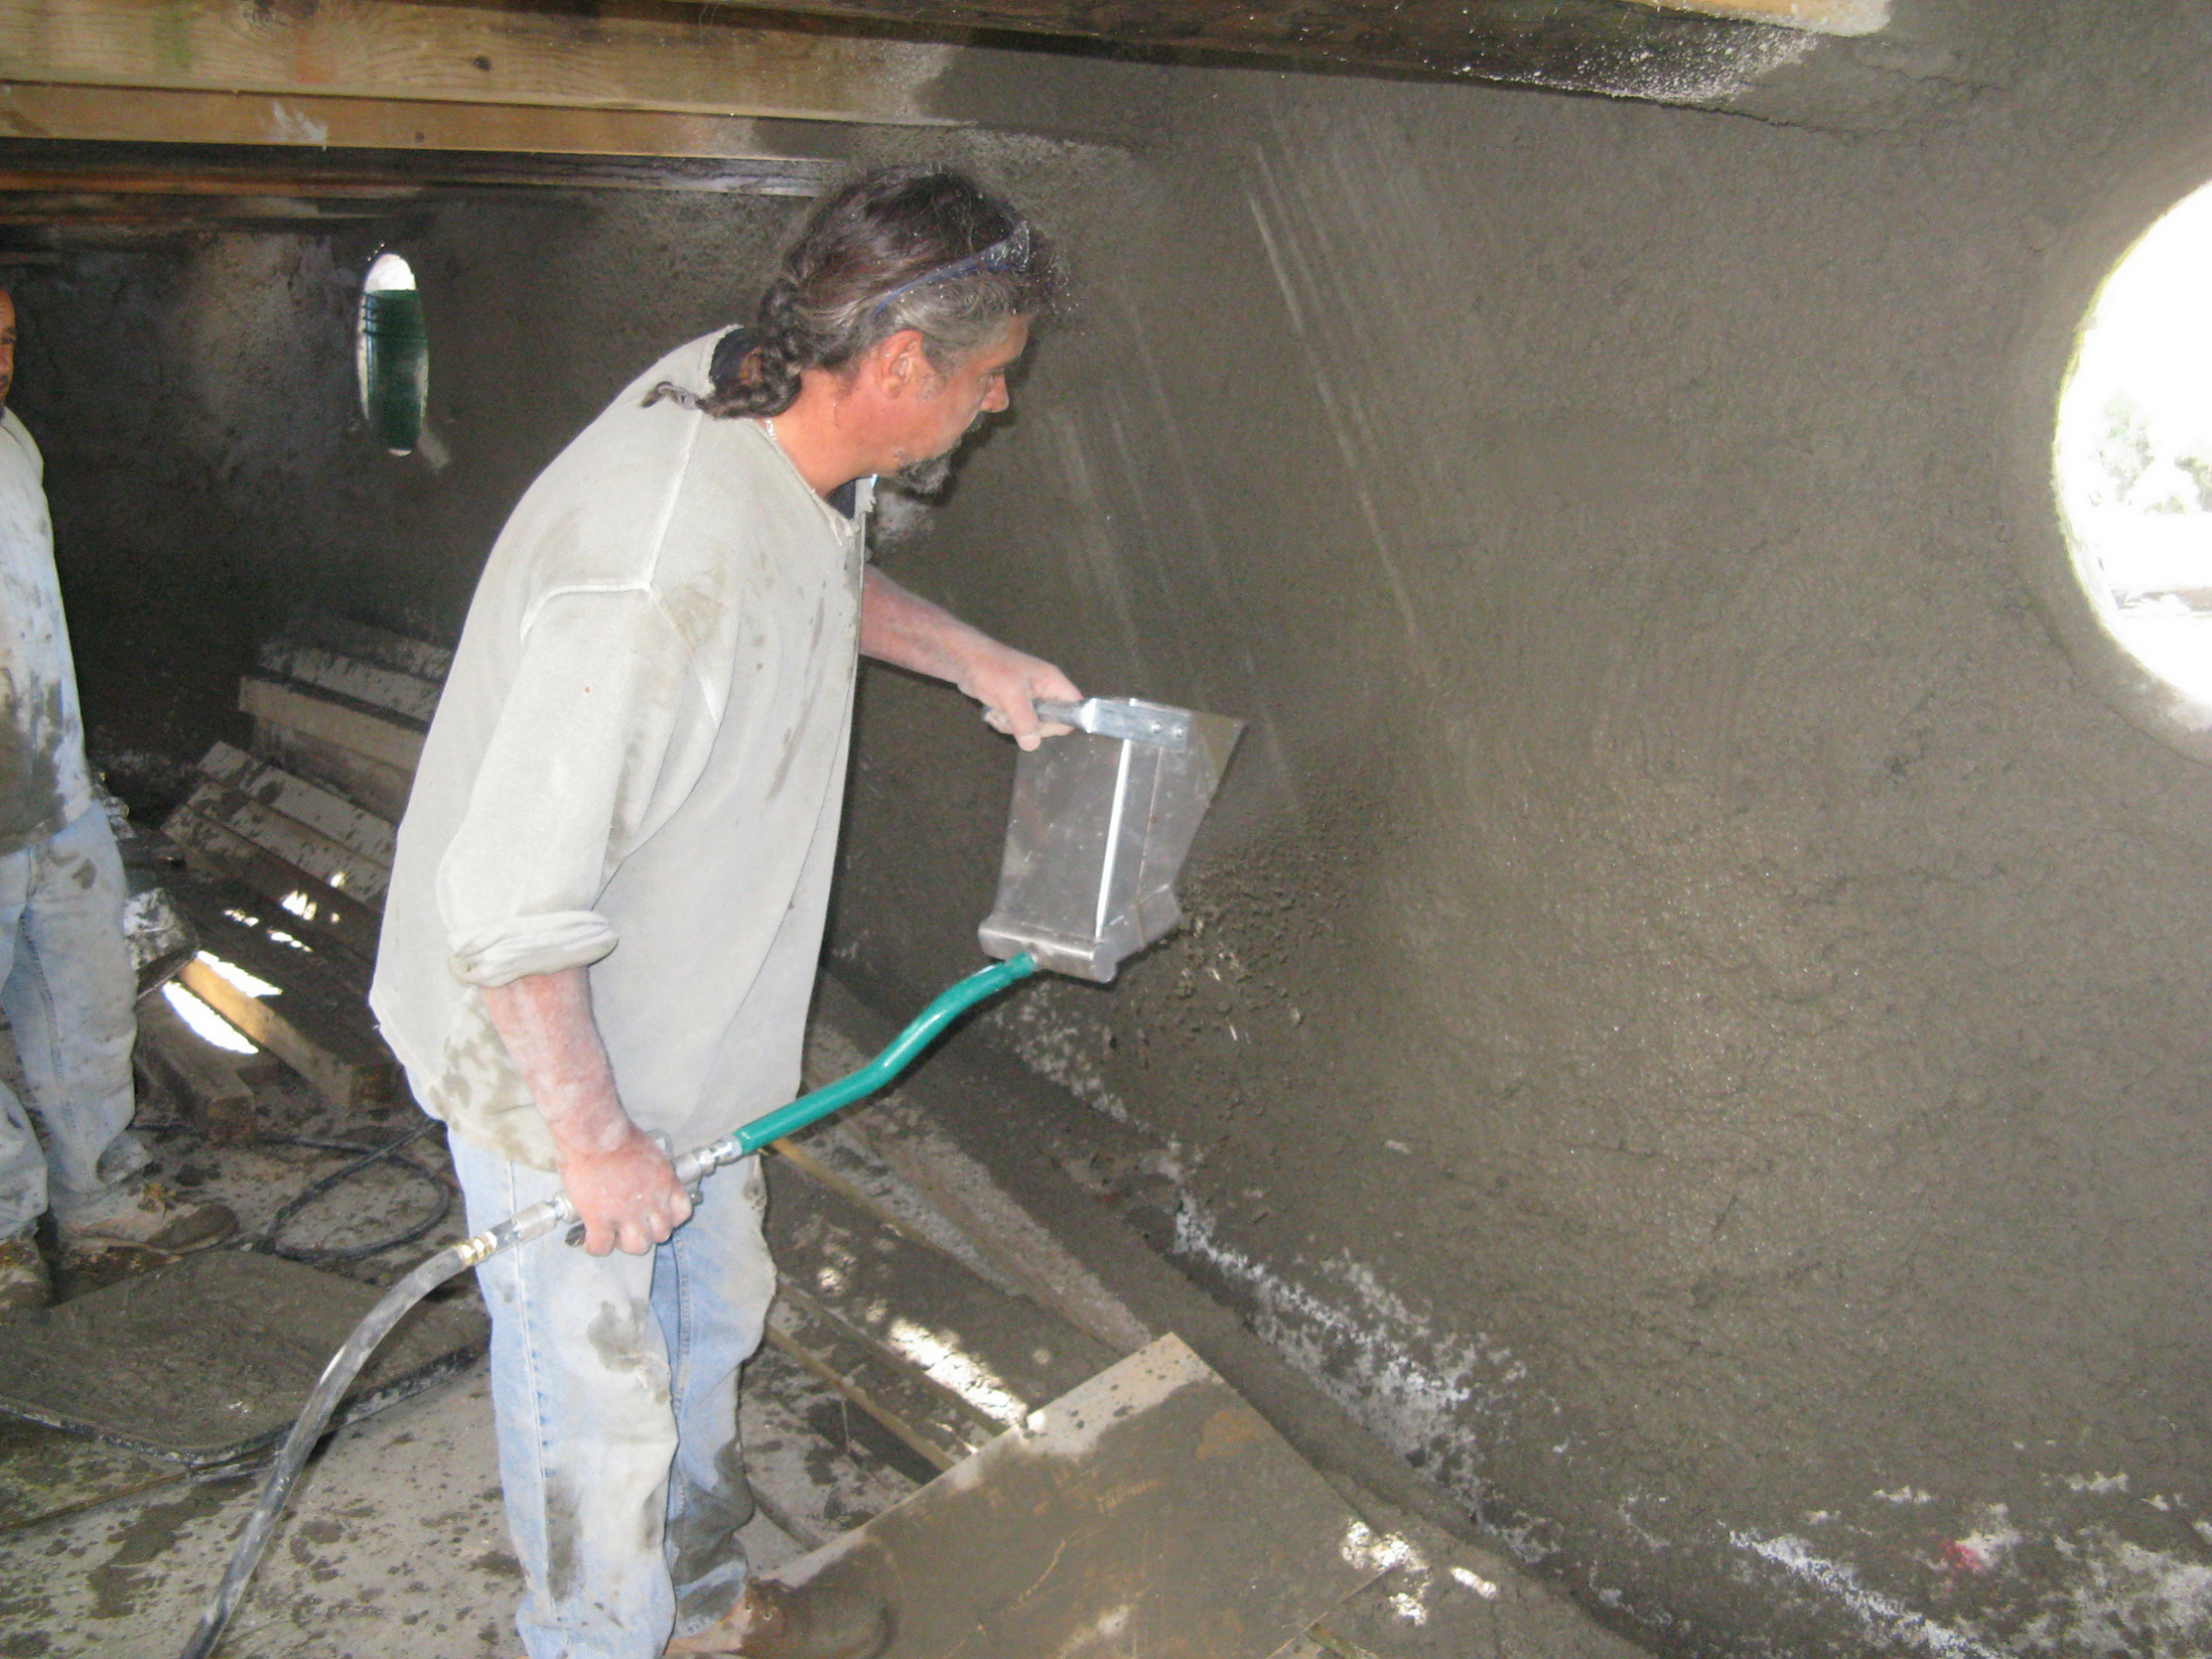 Spray On Plaster For Walls : Stucco sprayer for walls and ceilings made in the usa